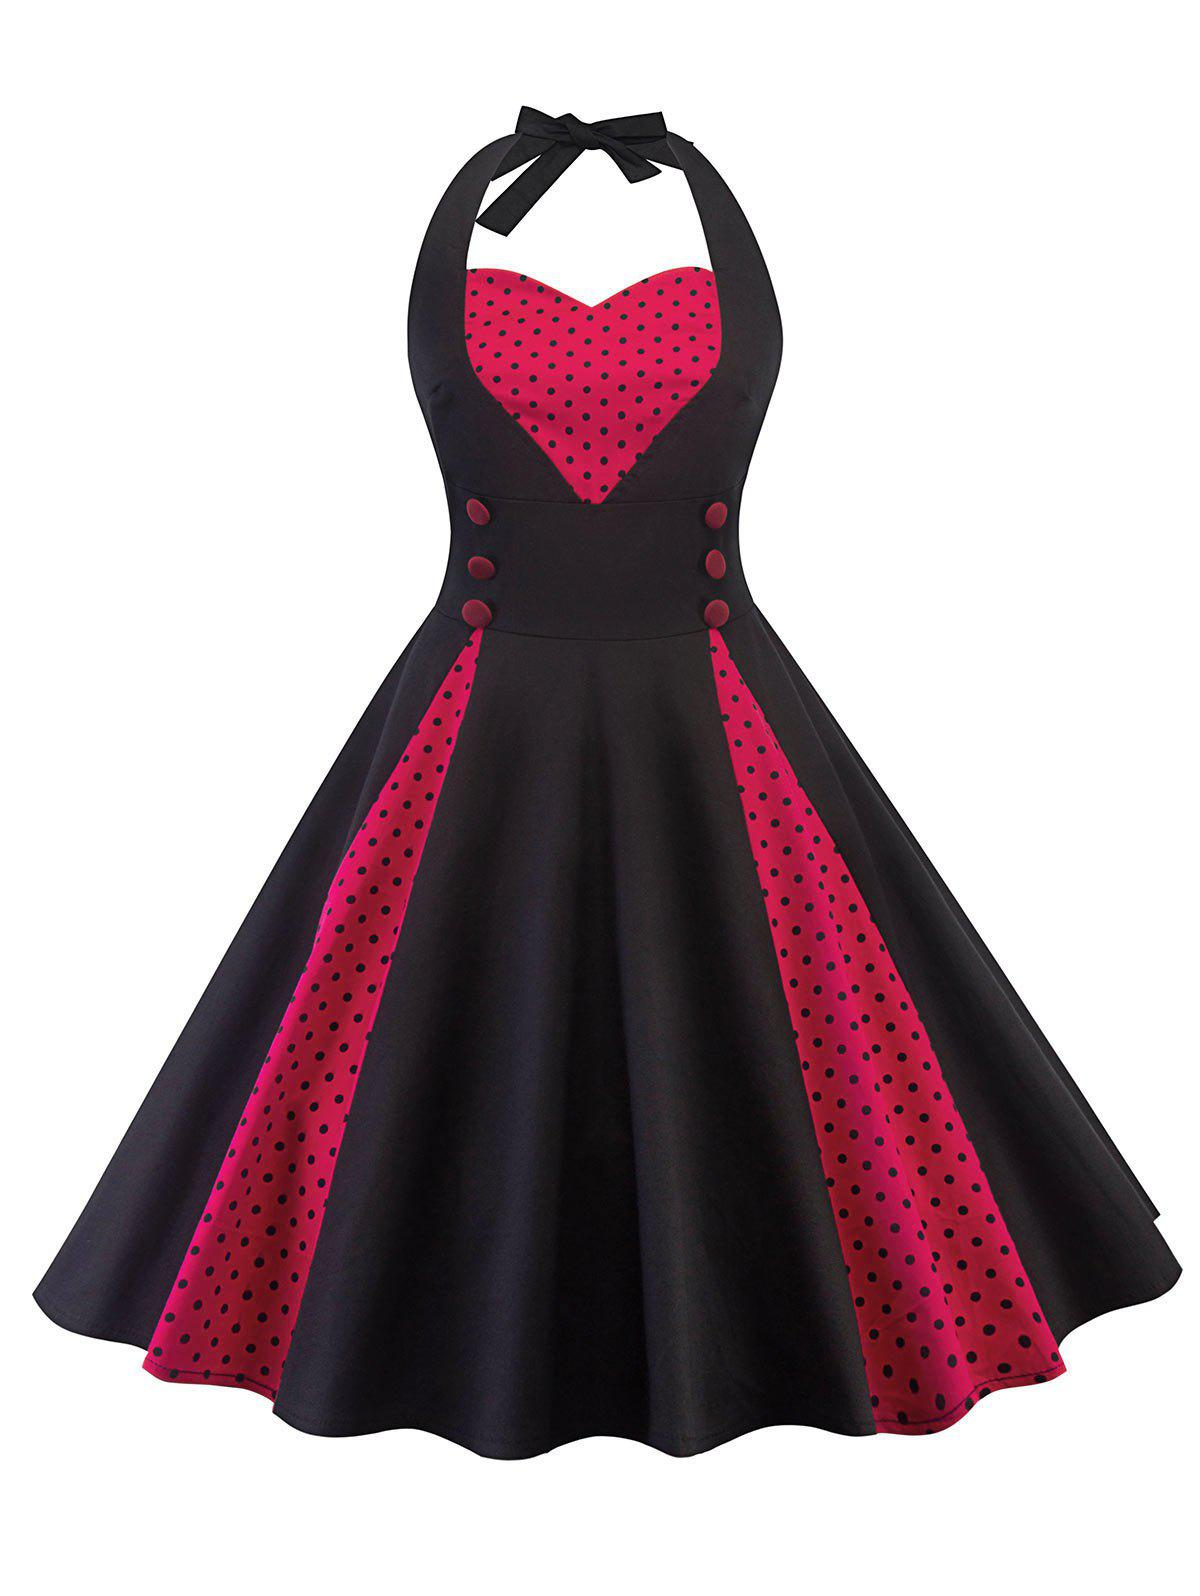 Fashion Polka Dot Insert Halter Neck Vintage Dress